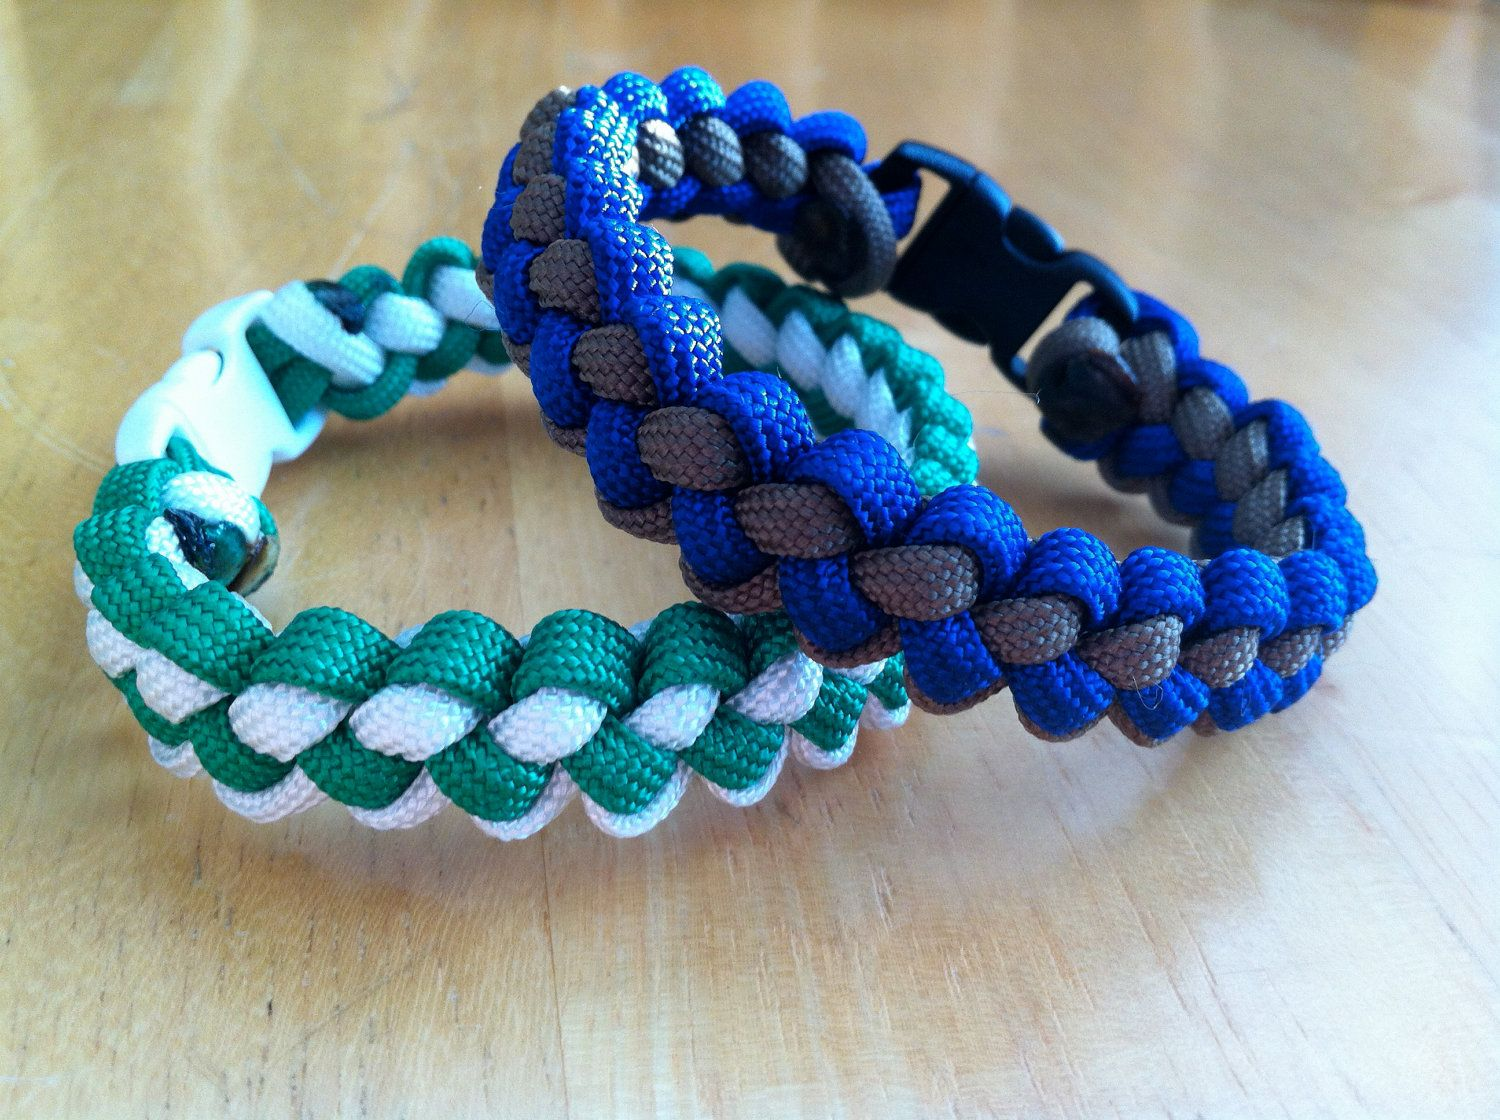 Zipper sinnet paracord bracelet by foxyknots on etsy